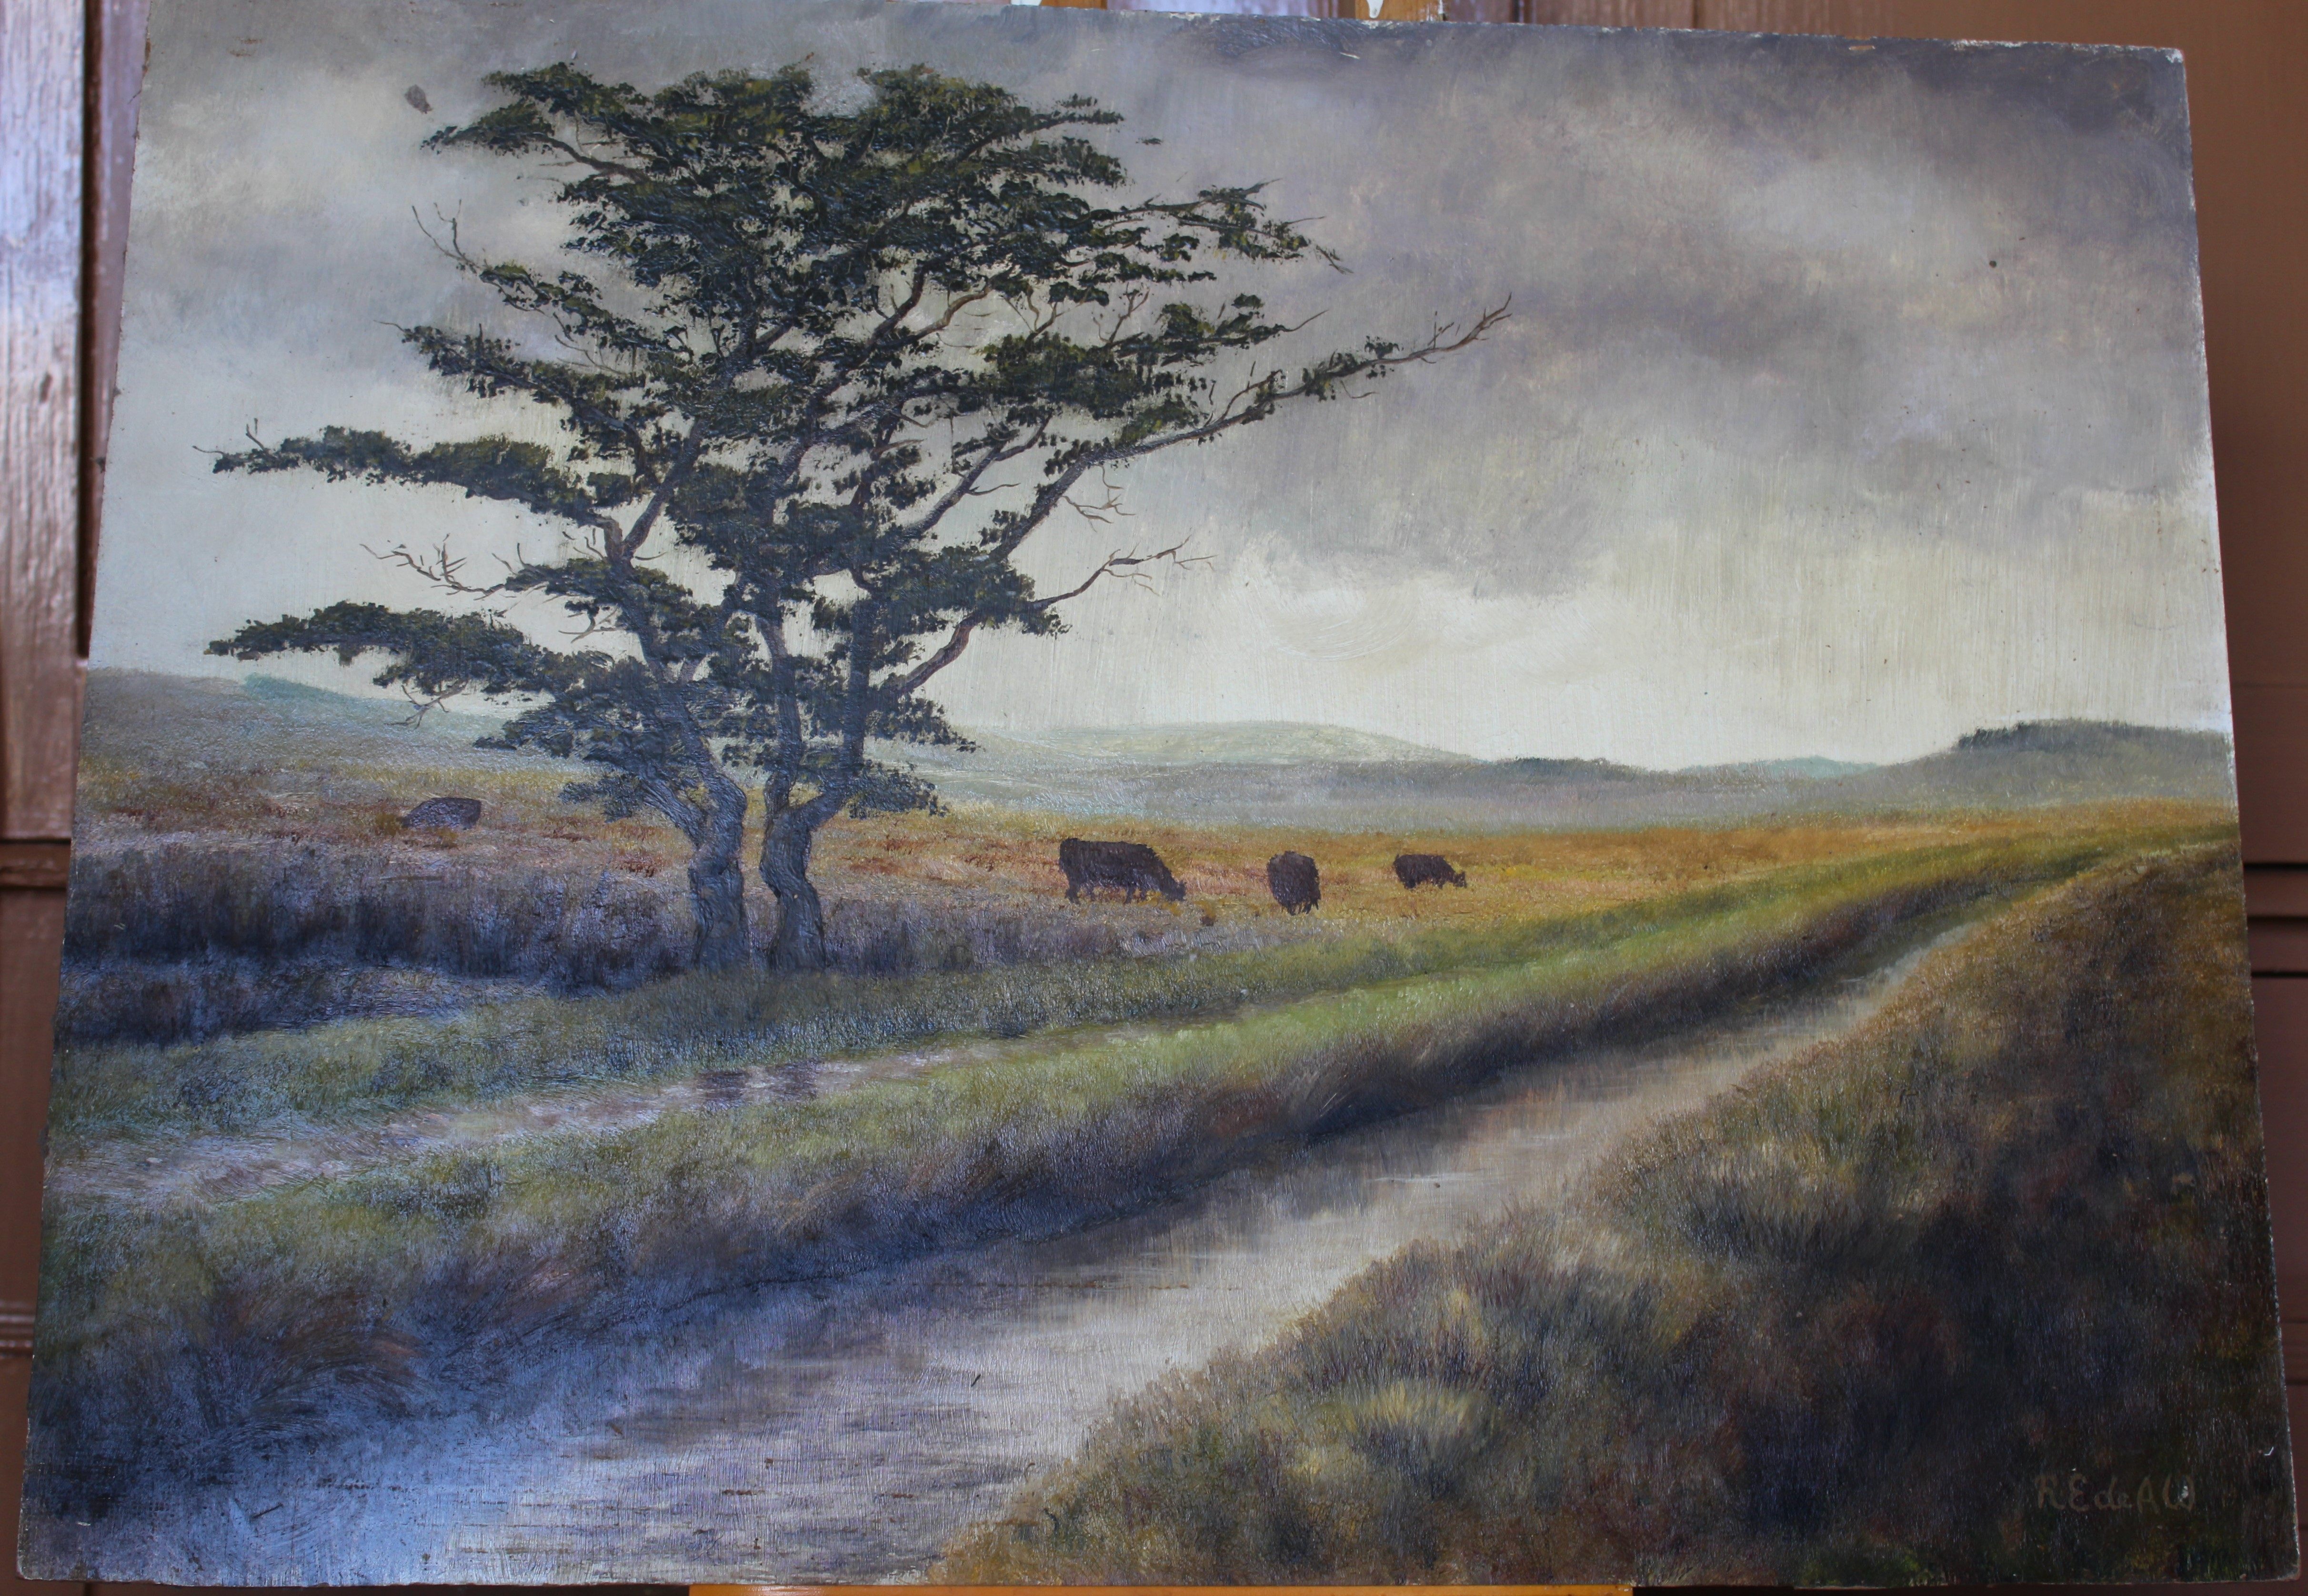 •MOORLAND LANDSCAPE WITH LEAT, TREES AND CATTLE Signed unframed oil on board, 45.5 x 60.5cm.